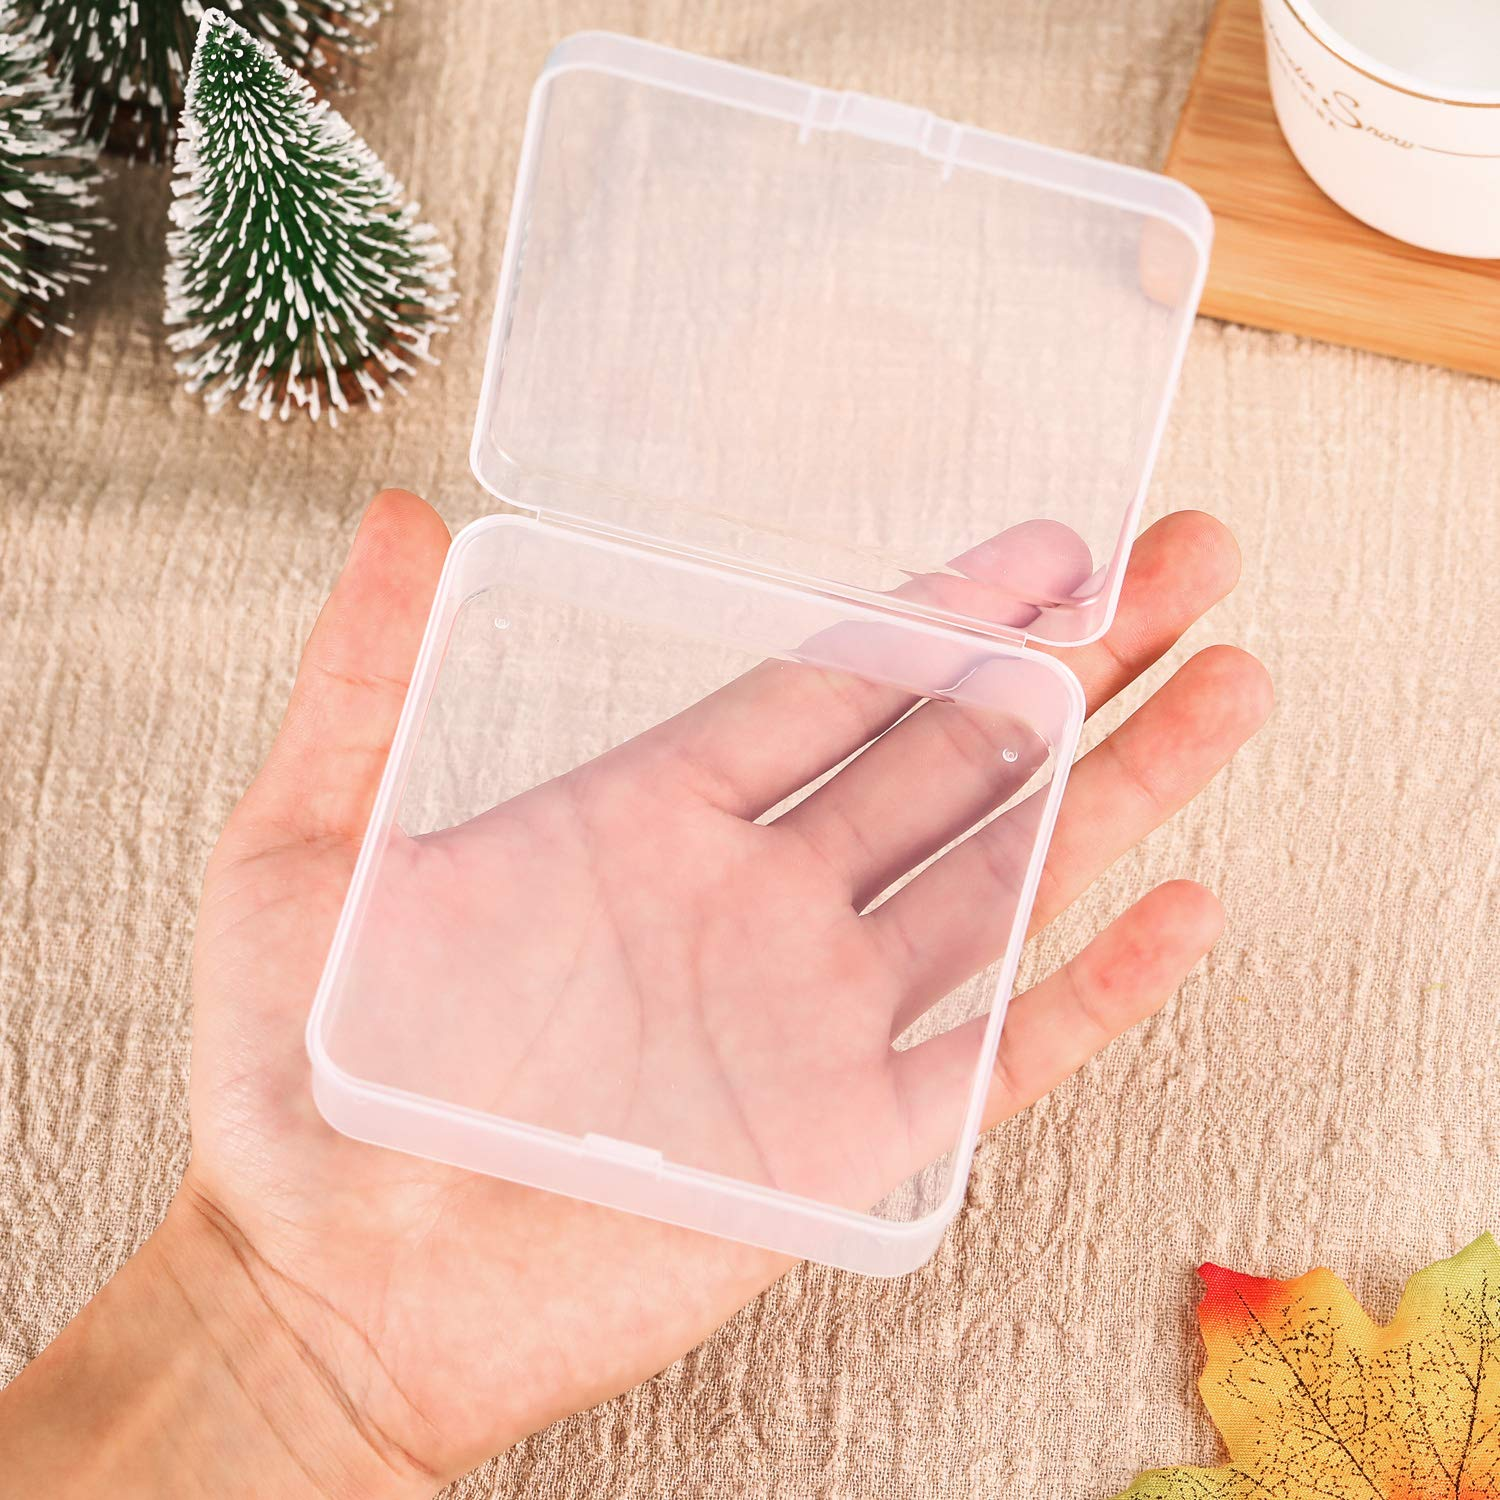 1.37 x 1.37 x 0.7 Pollici SATINIOR 12 Pack Clear Plastic Beads Storage Containers Box with Hinged Lid for Beads And More